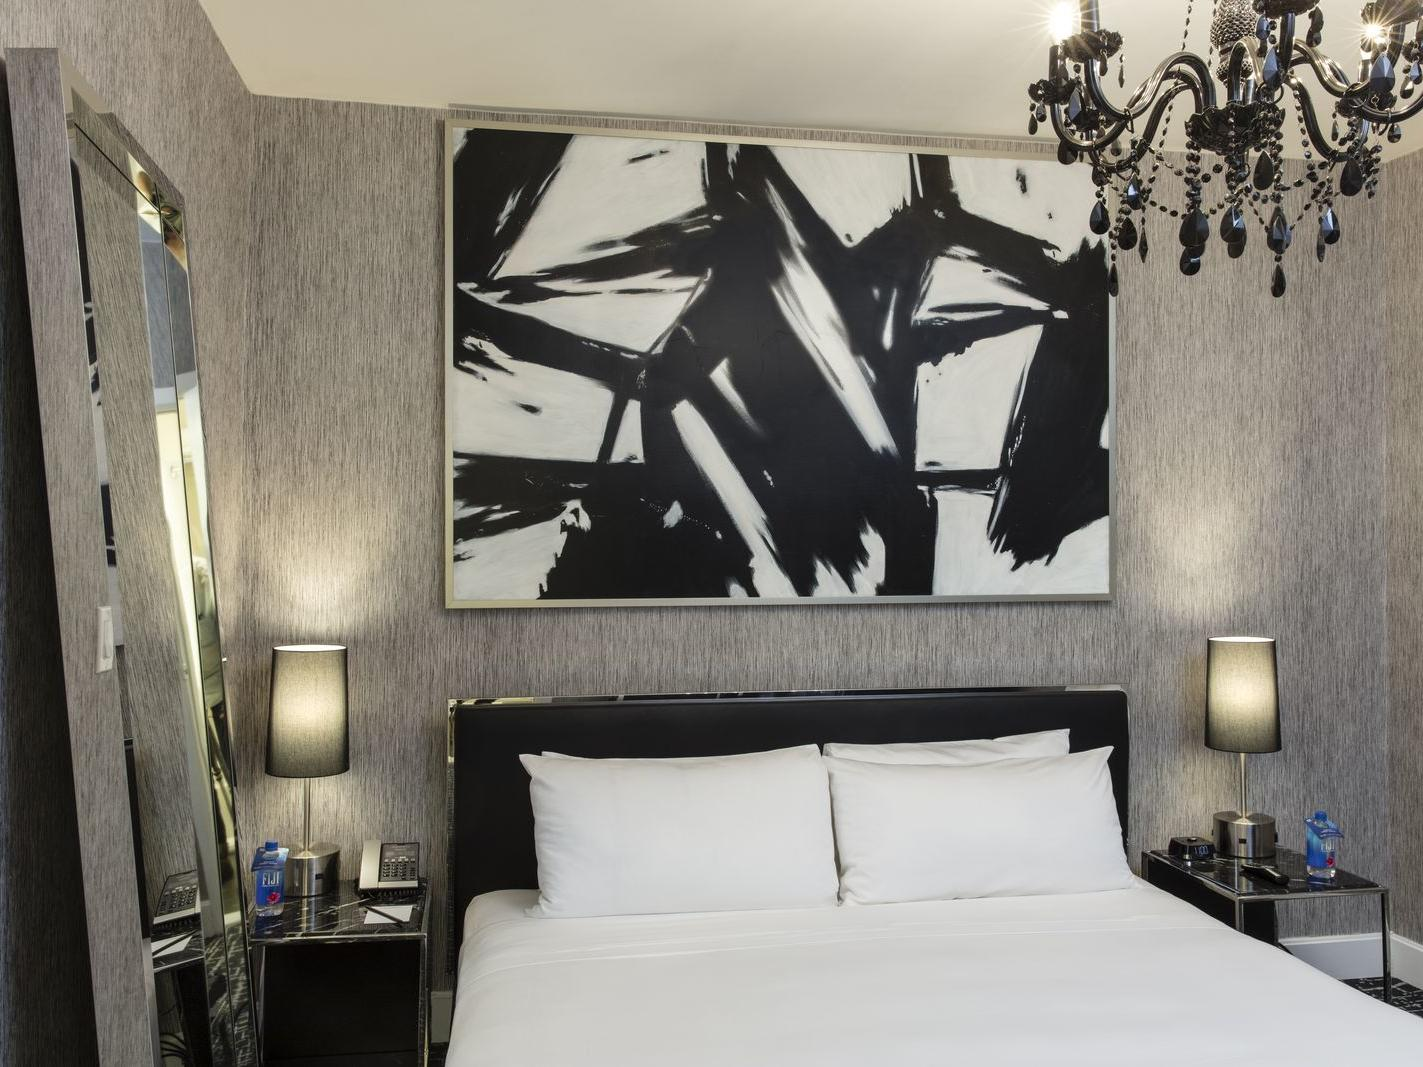 a bed in a hotel room with a chandelier